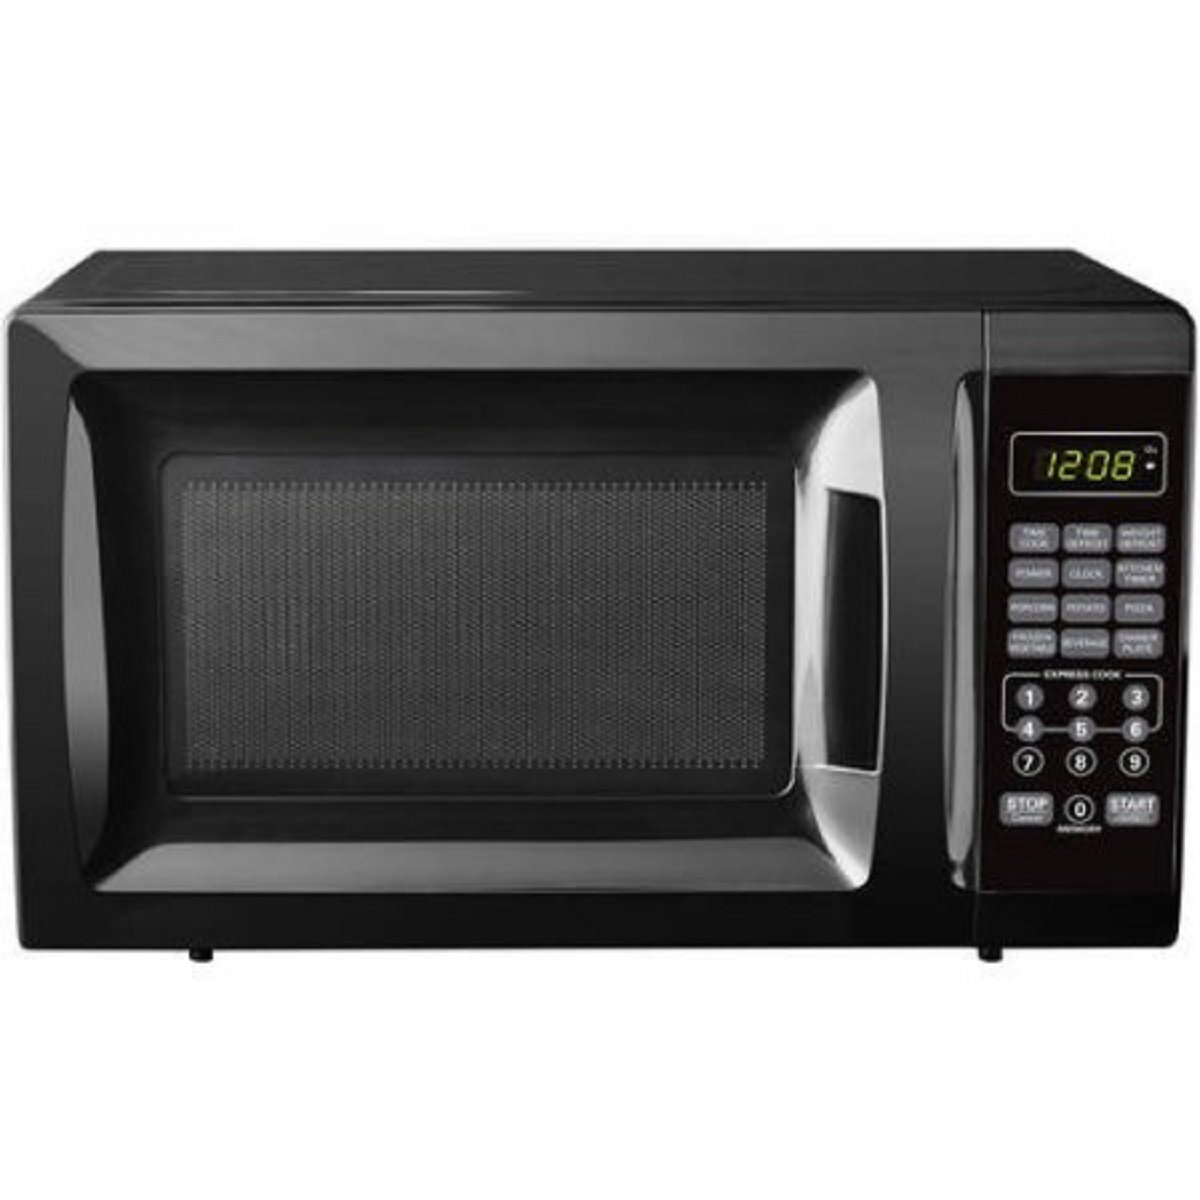 0.7-Cubic Foot Black Child-Safe Lockout Feature 10 Power Levels 6 Quick-Set Menu Buttons LED Display Microwave Oven